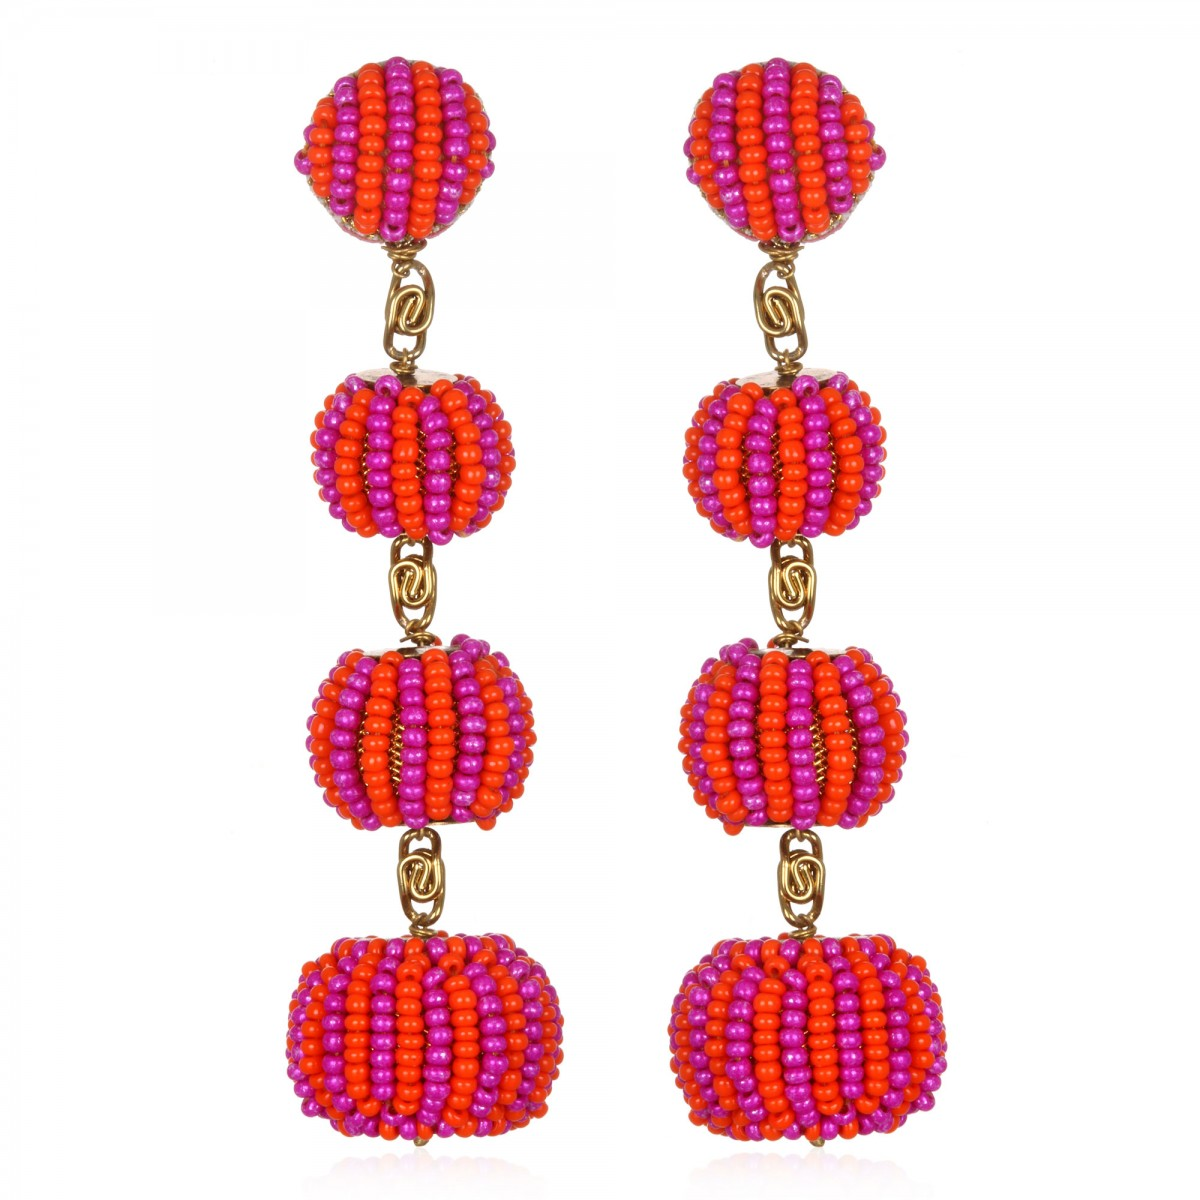 Watermelon Gumball Earrings by SUZANNA DAI